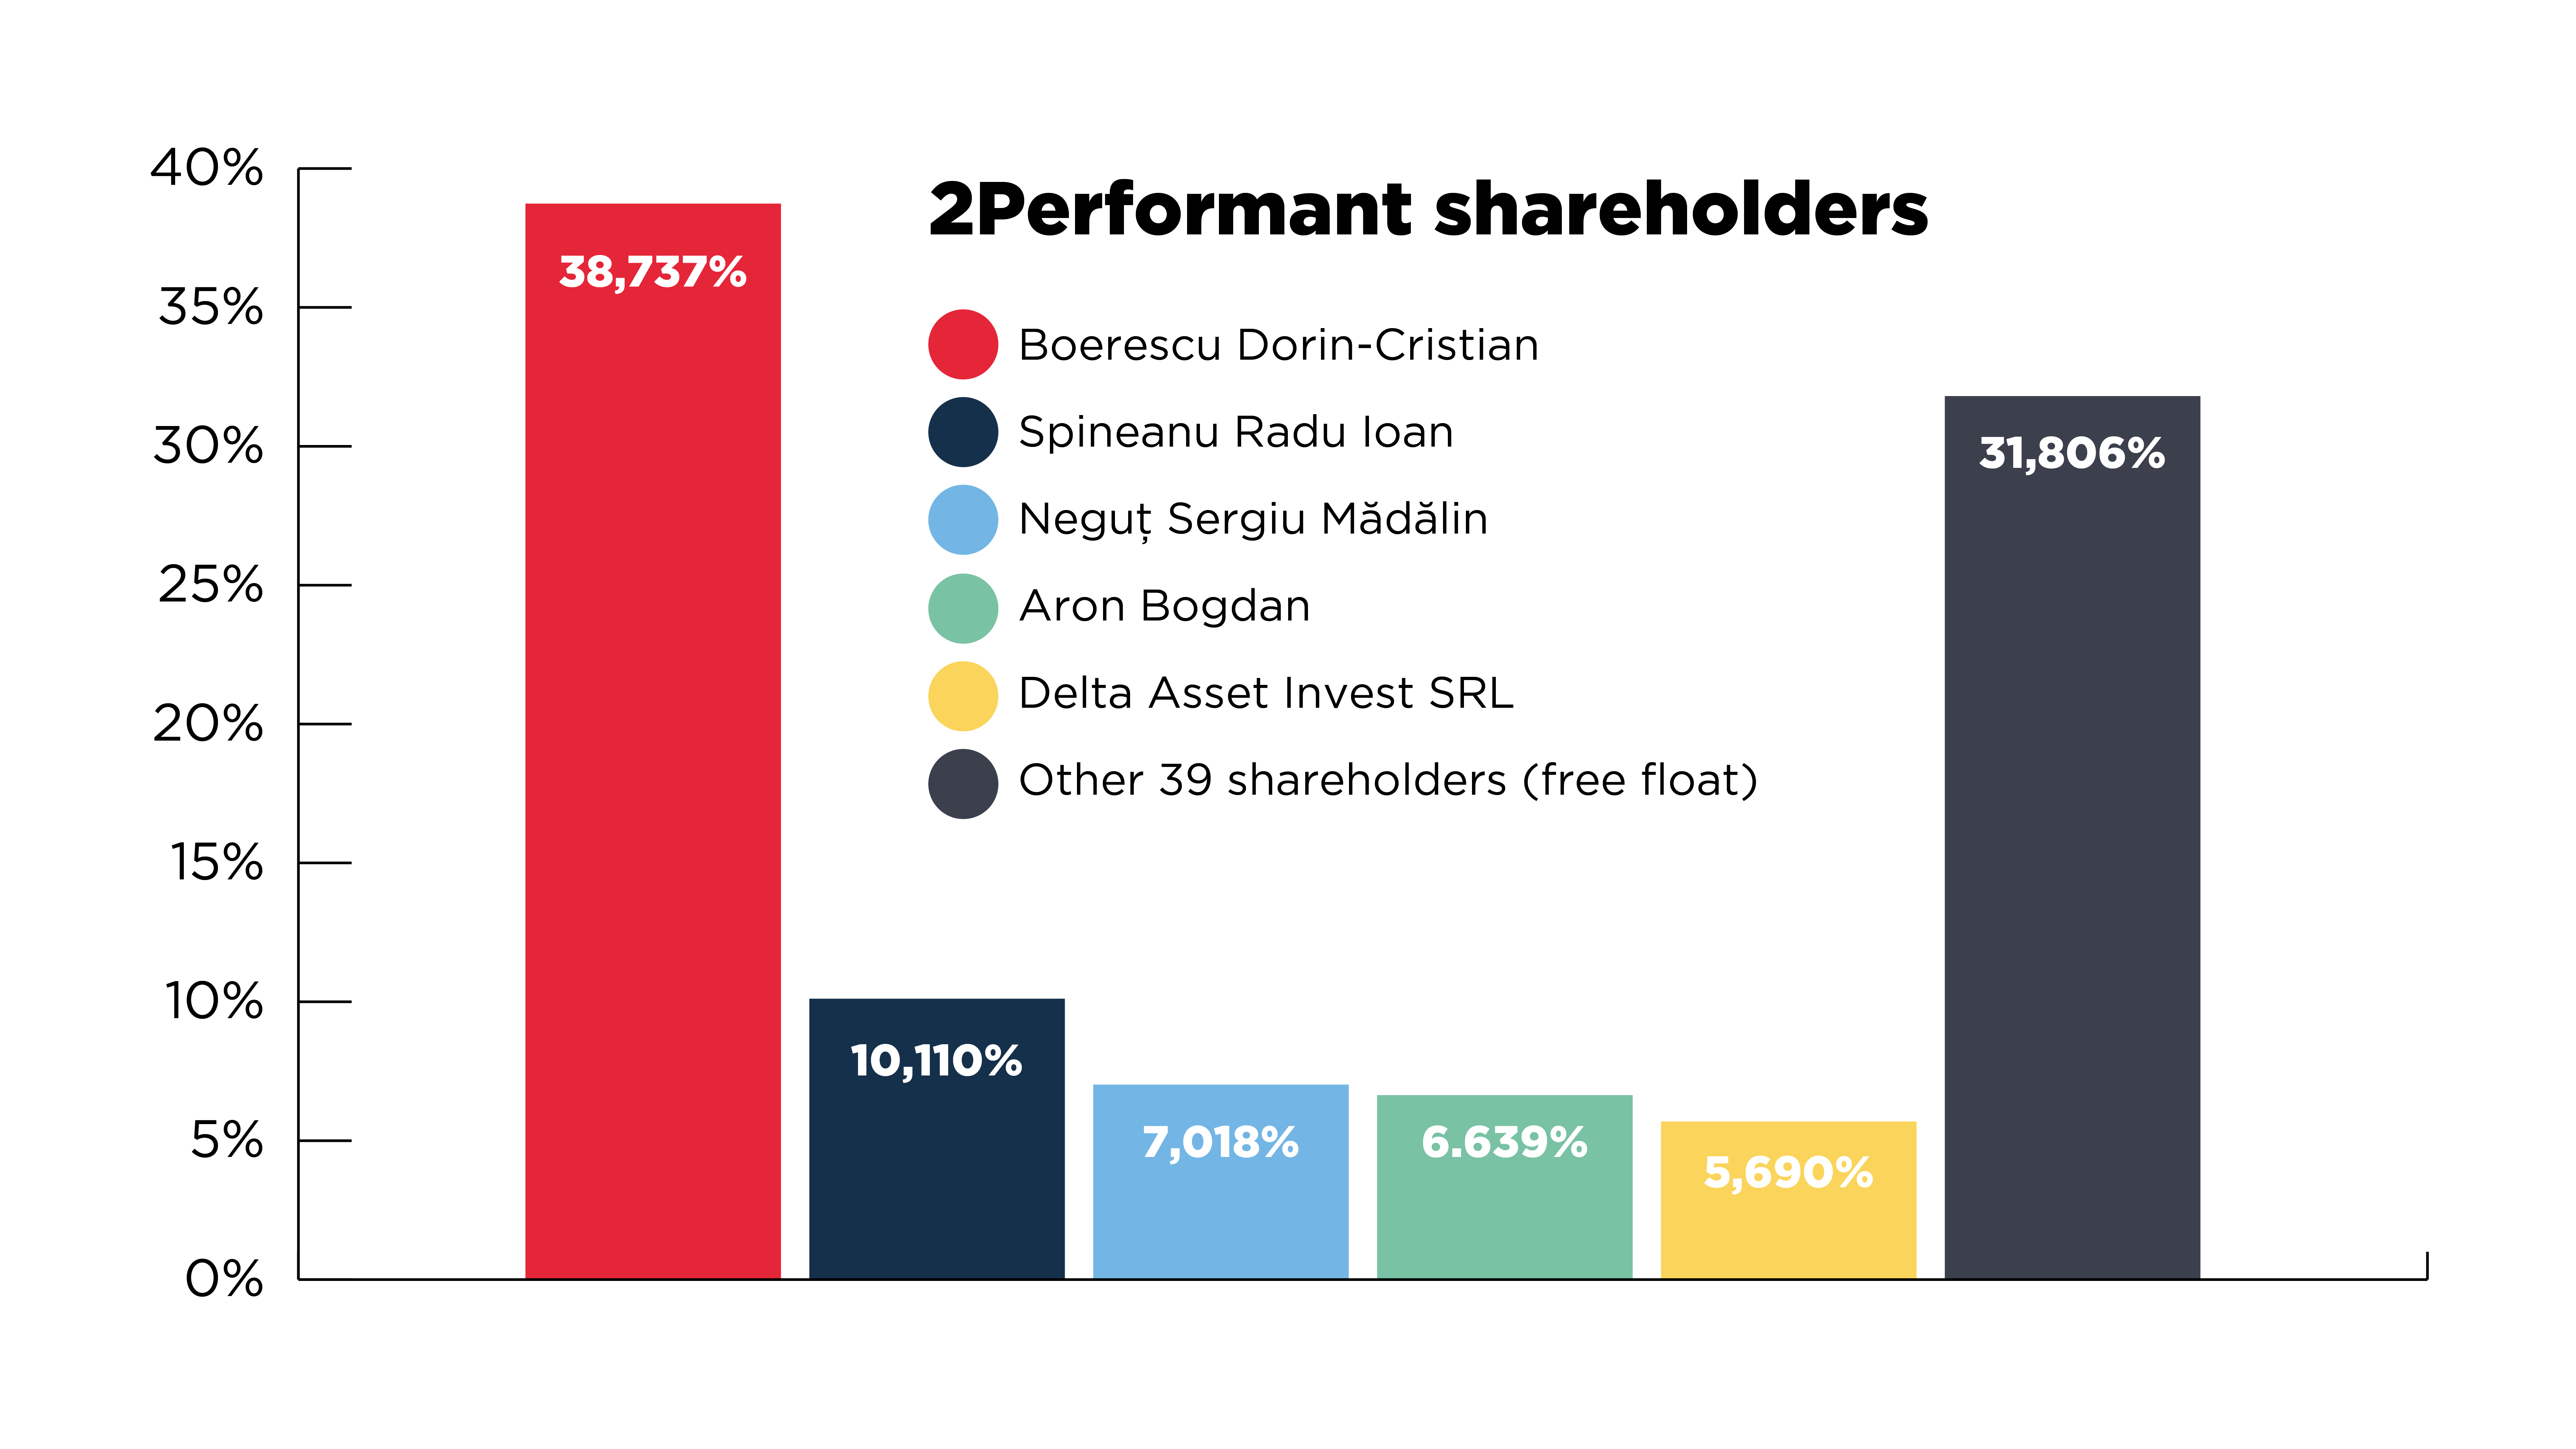 2Performant shareholder structure